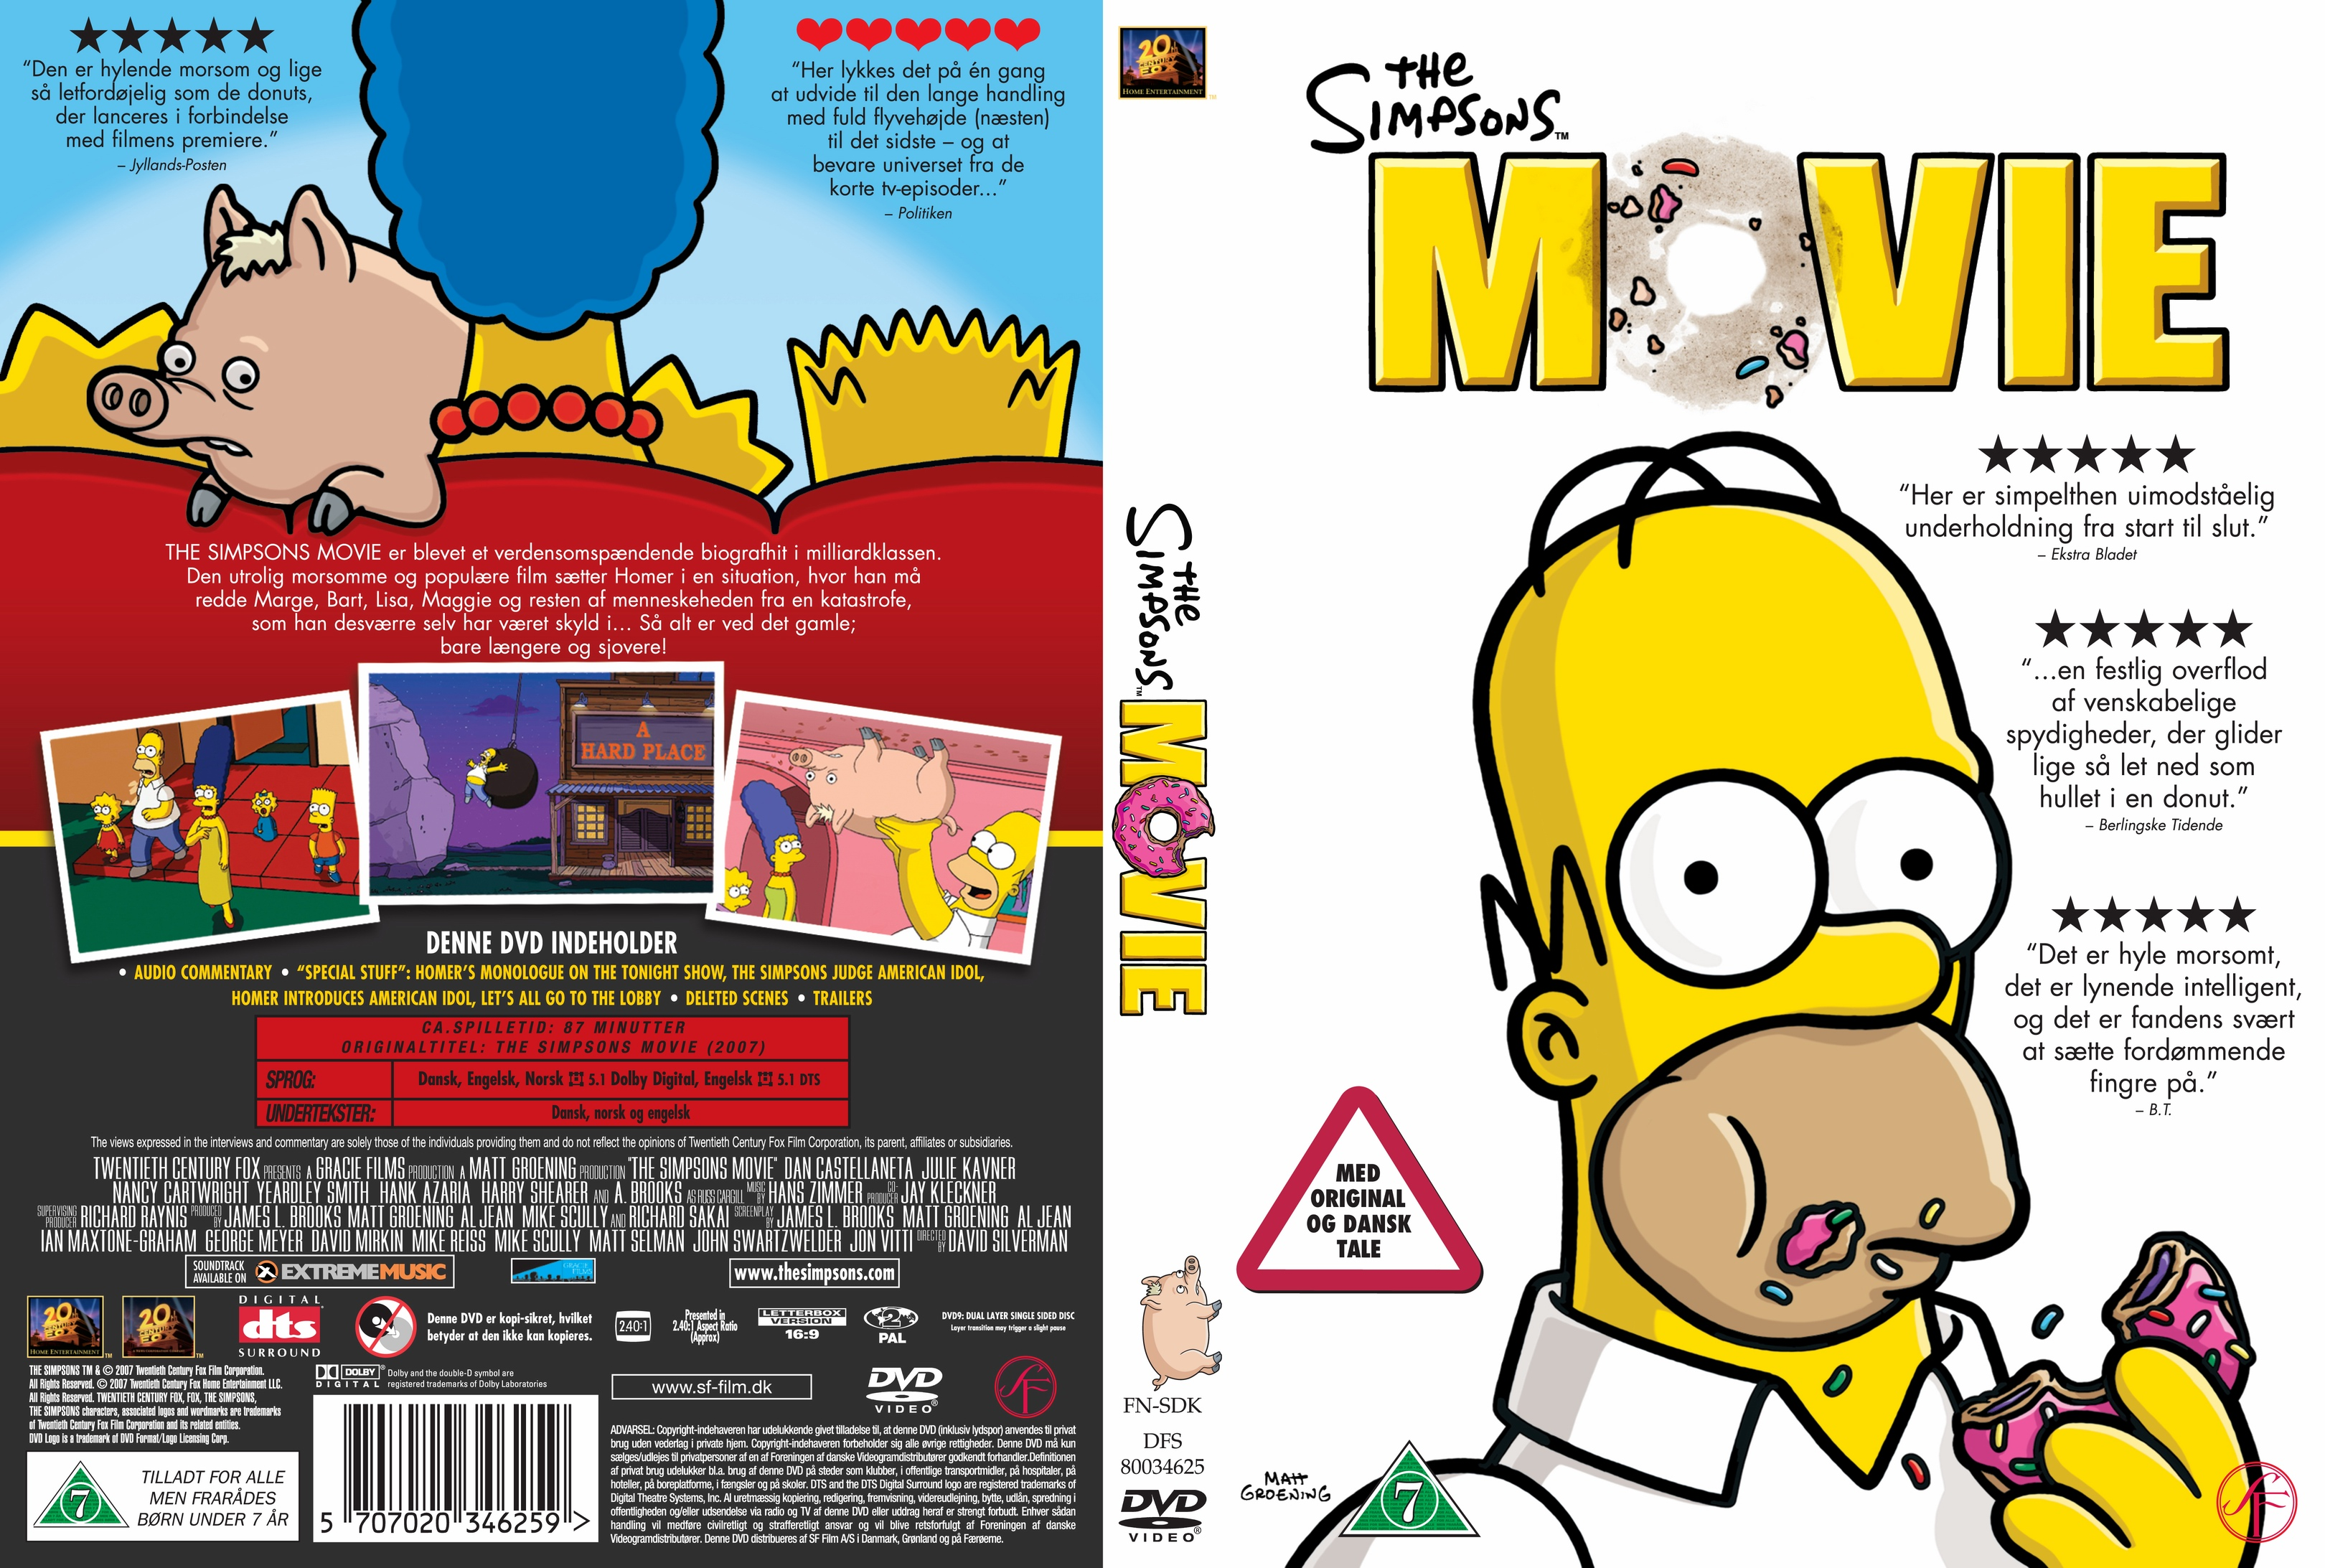 File The Simpsons Movie Soundtrack Cover Jpg The Simpsons Movie Images Pictures Photos Icons And Wallpapers Ravepad The Place To Rave About Anything And Everything